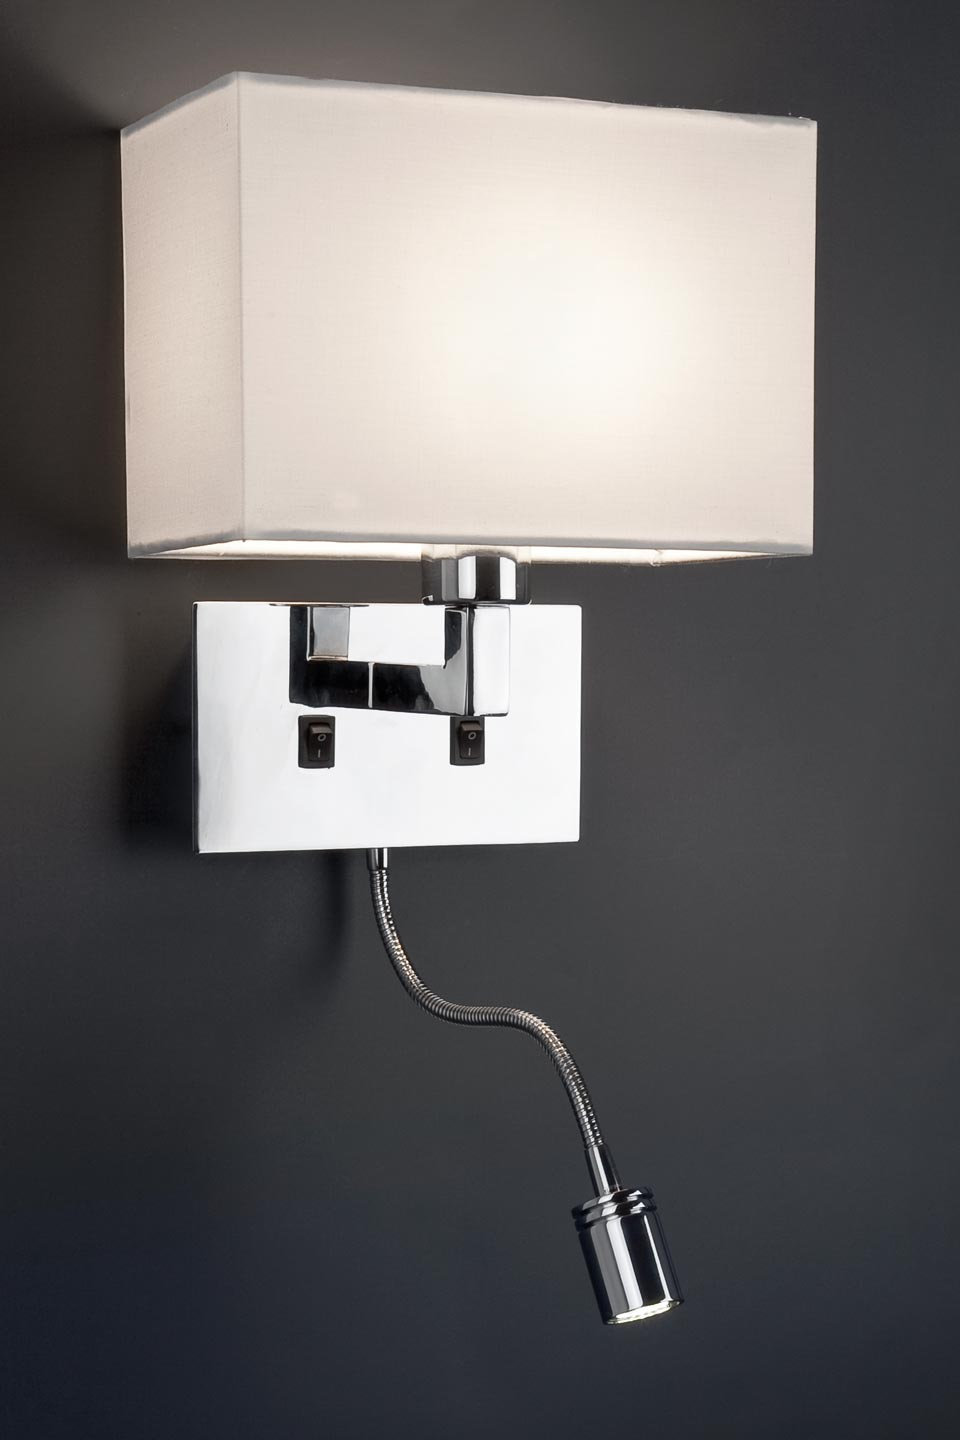 Sinki chrome and white fabric designer bedside wall light with LED reading light Faro - Ref ...